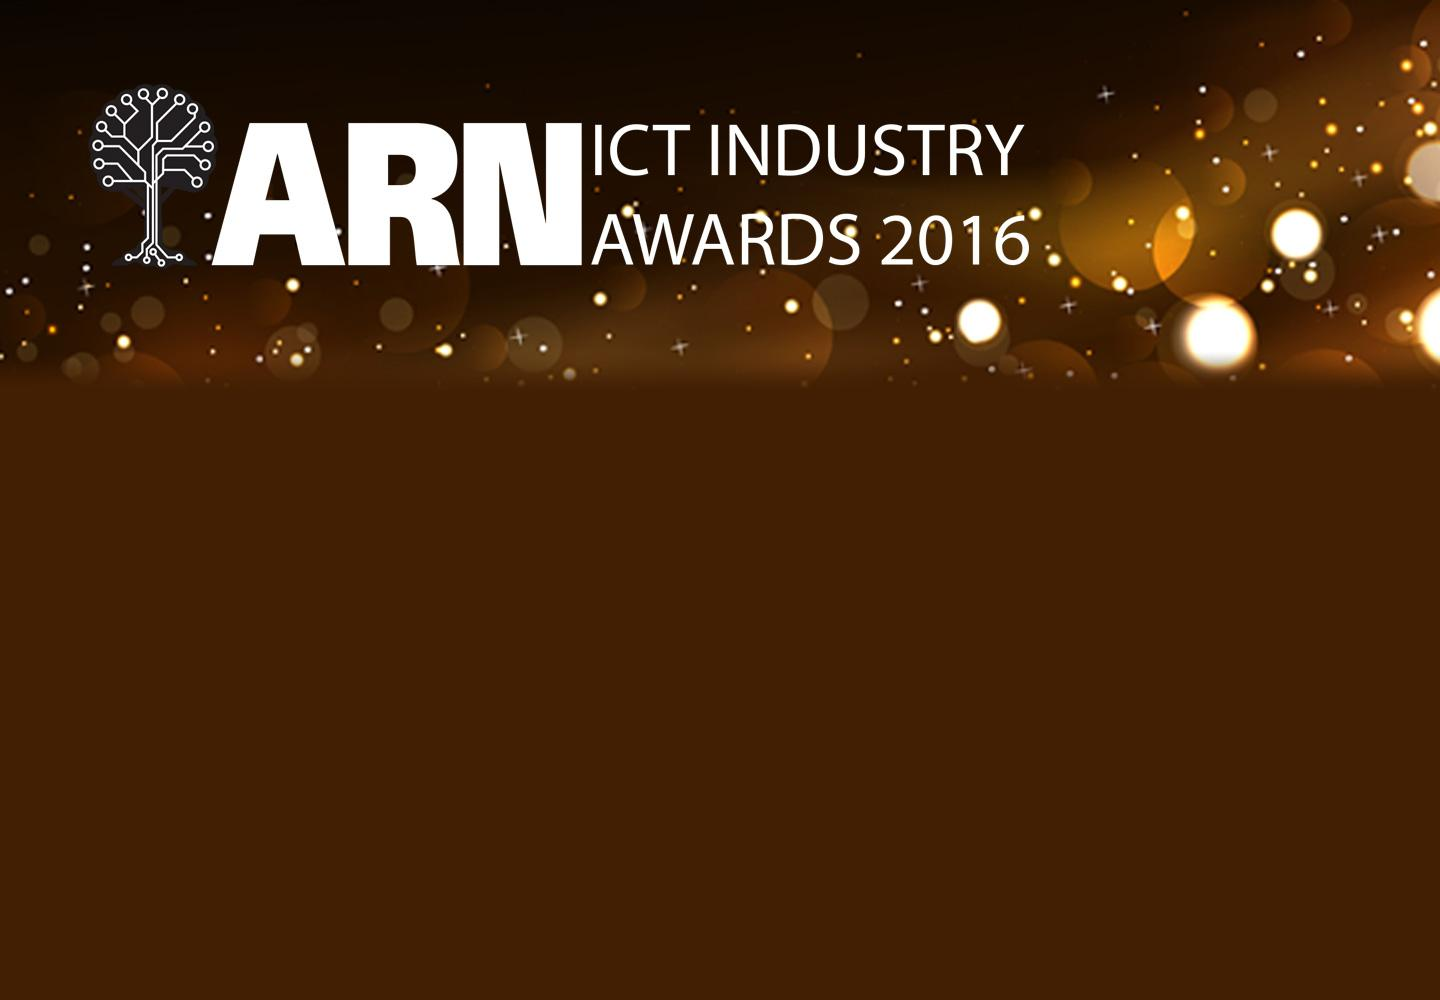 ARN ICT Industry Awards